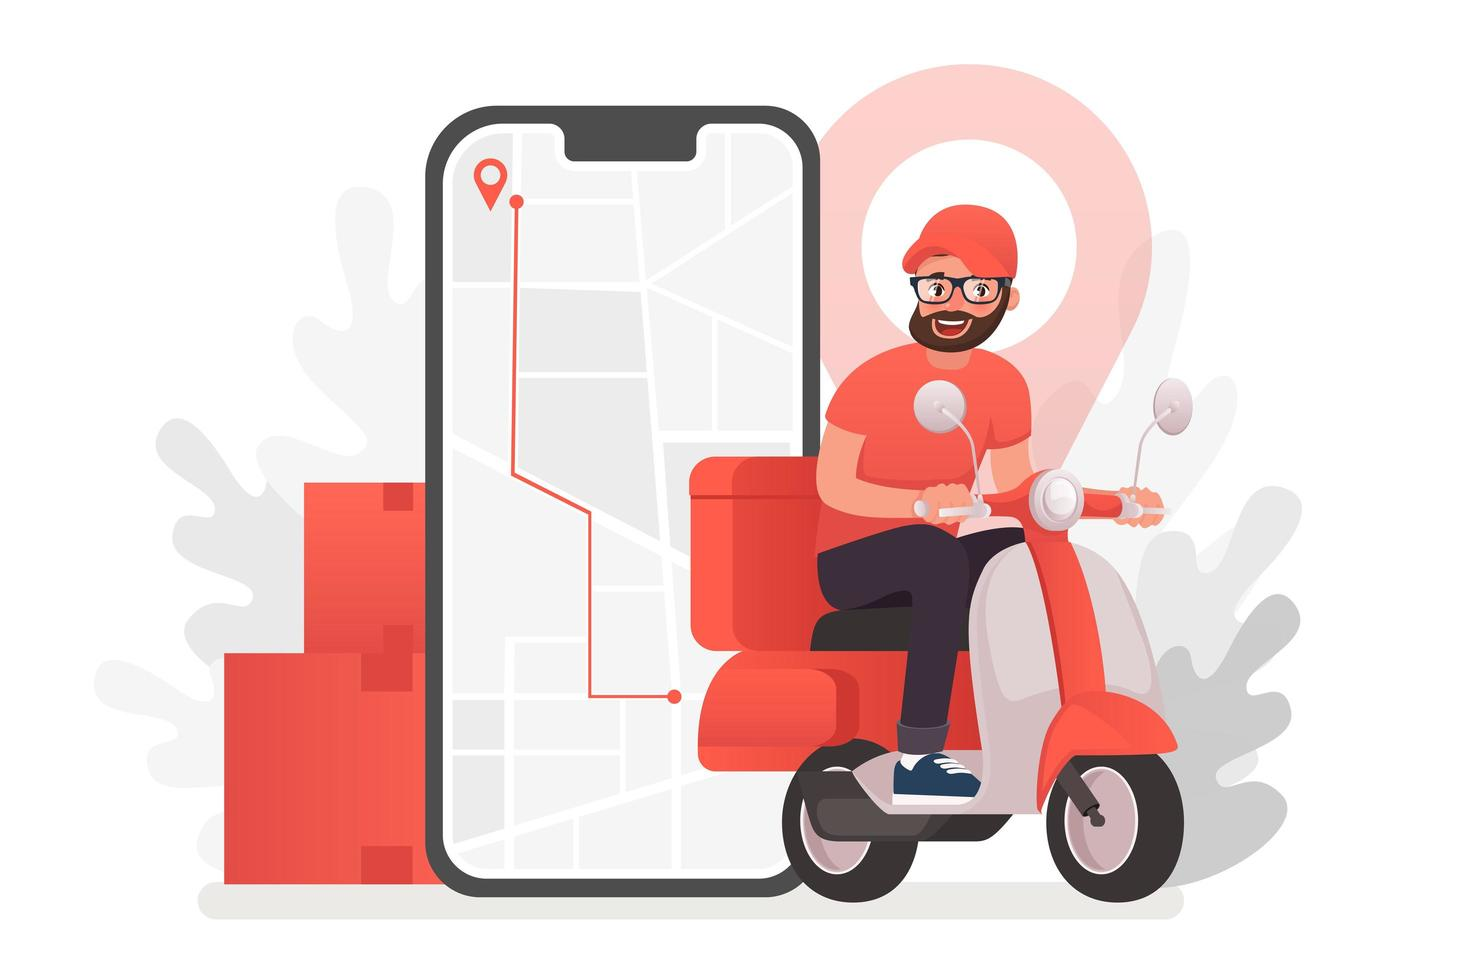 Delviery man on scooter in front of phone vector